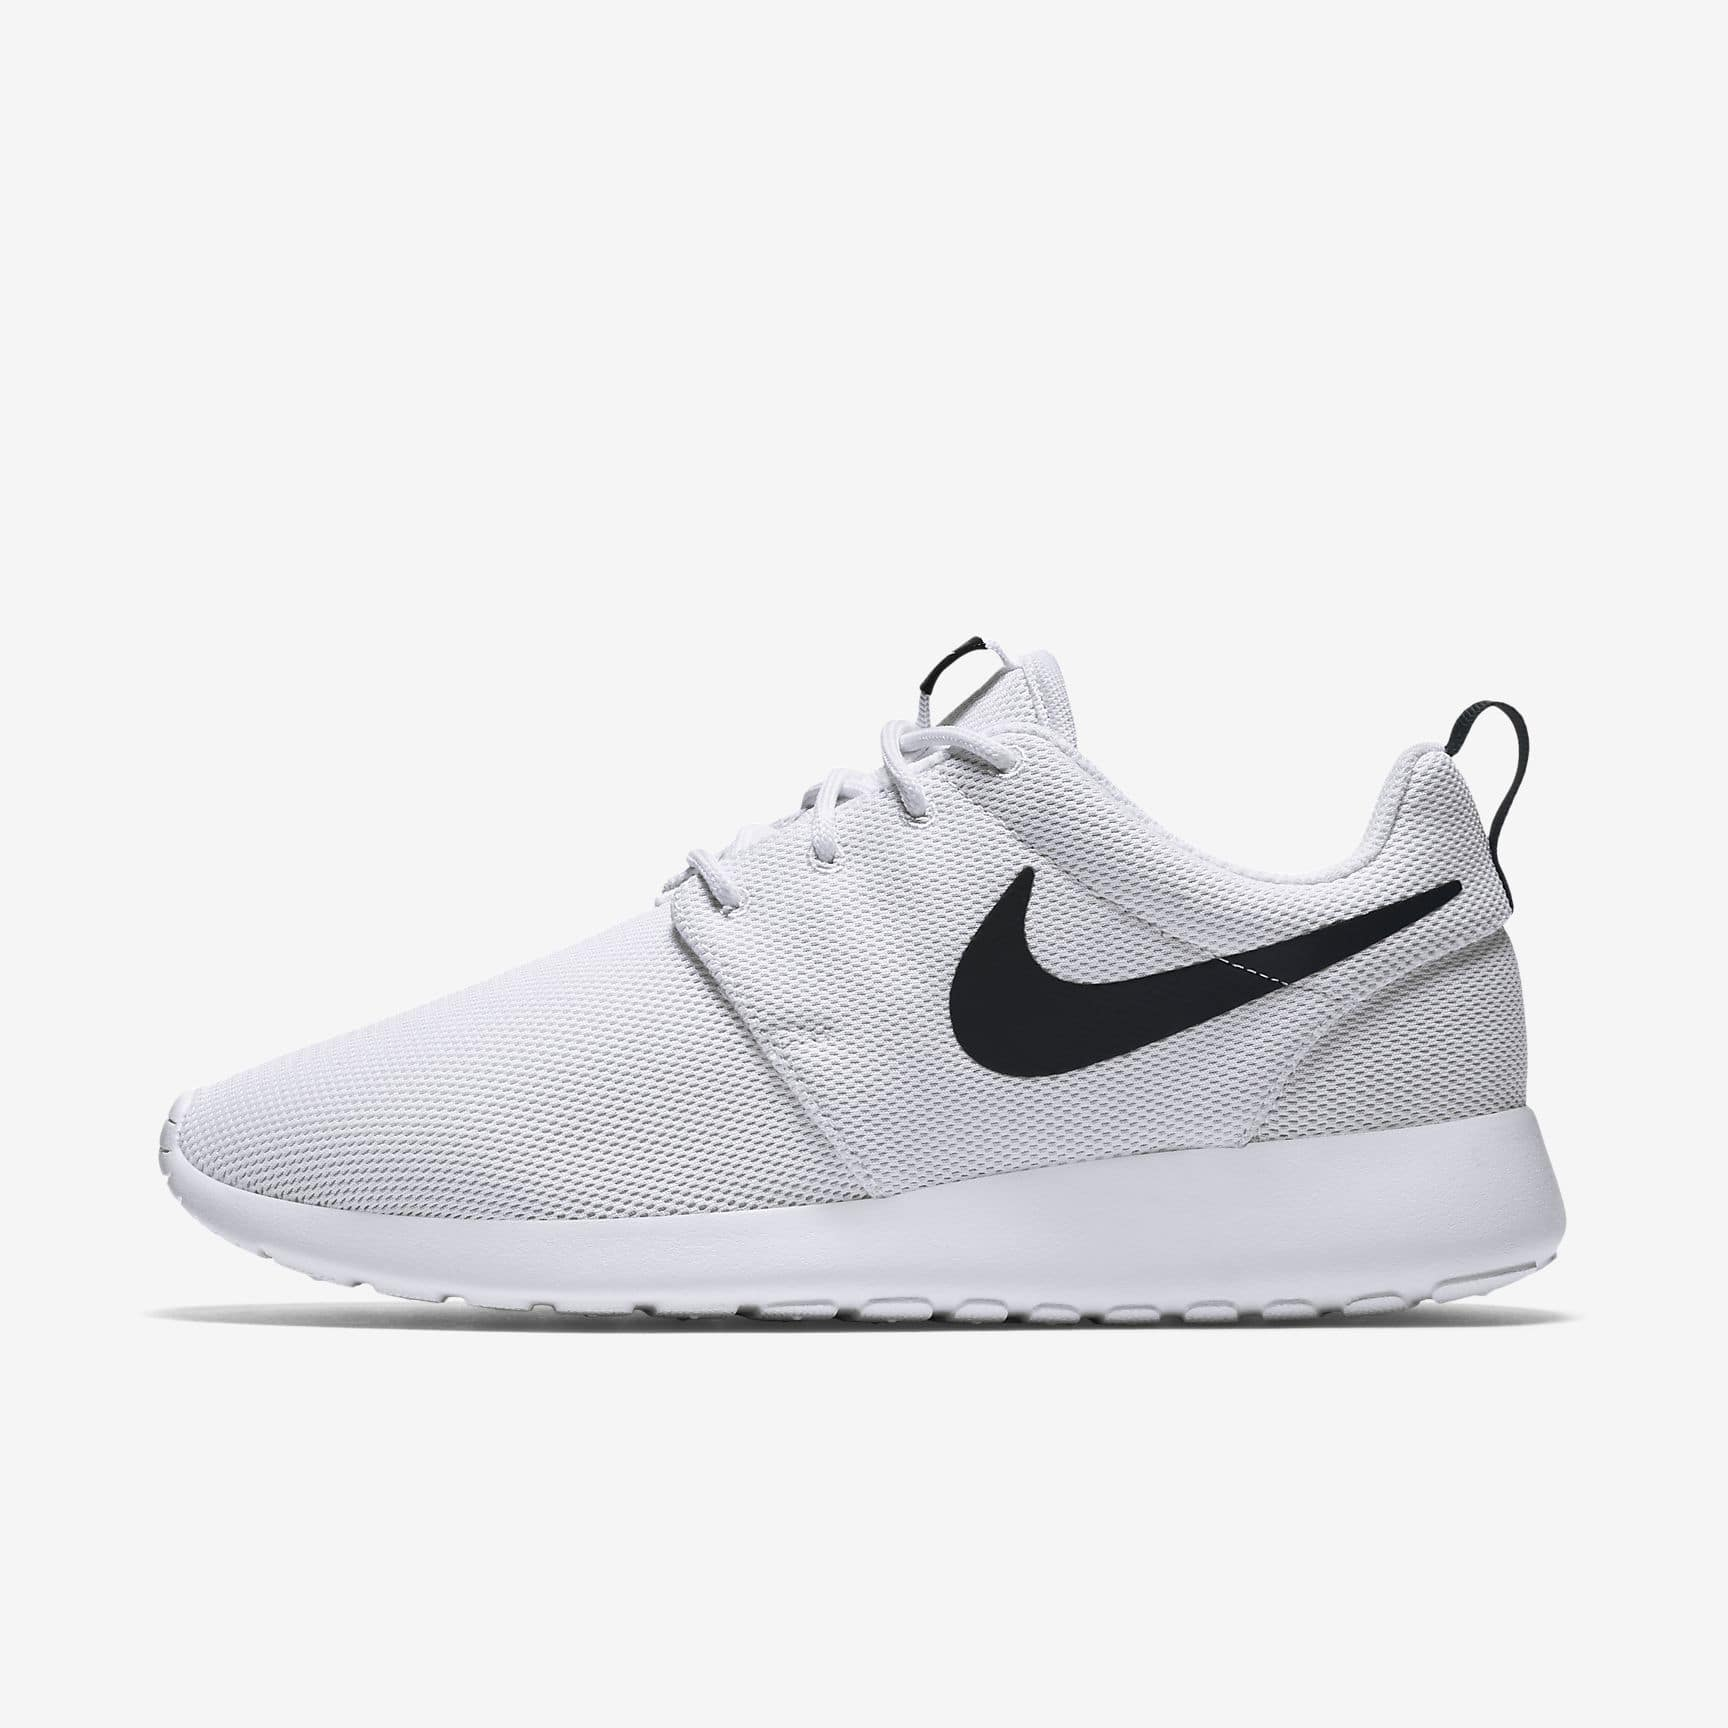 huge discount 0ccf6 b1871 Nike Women's Roshe One Shoes (White/Black/White ...